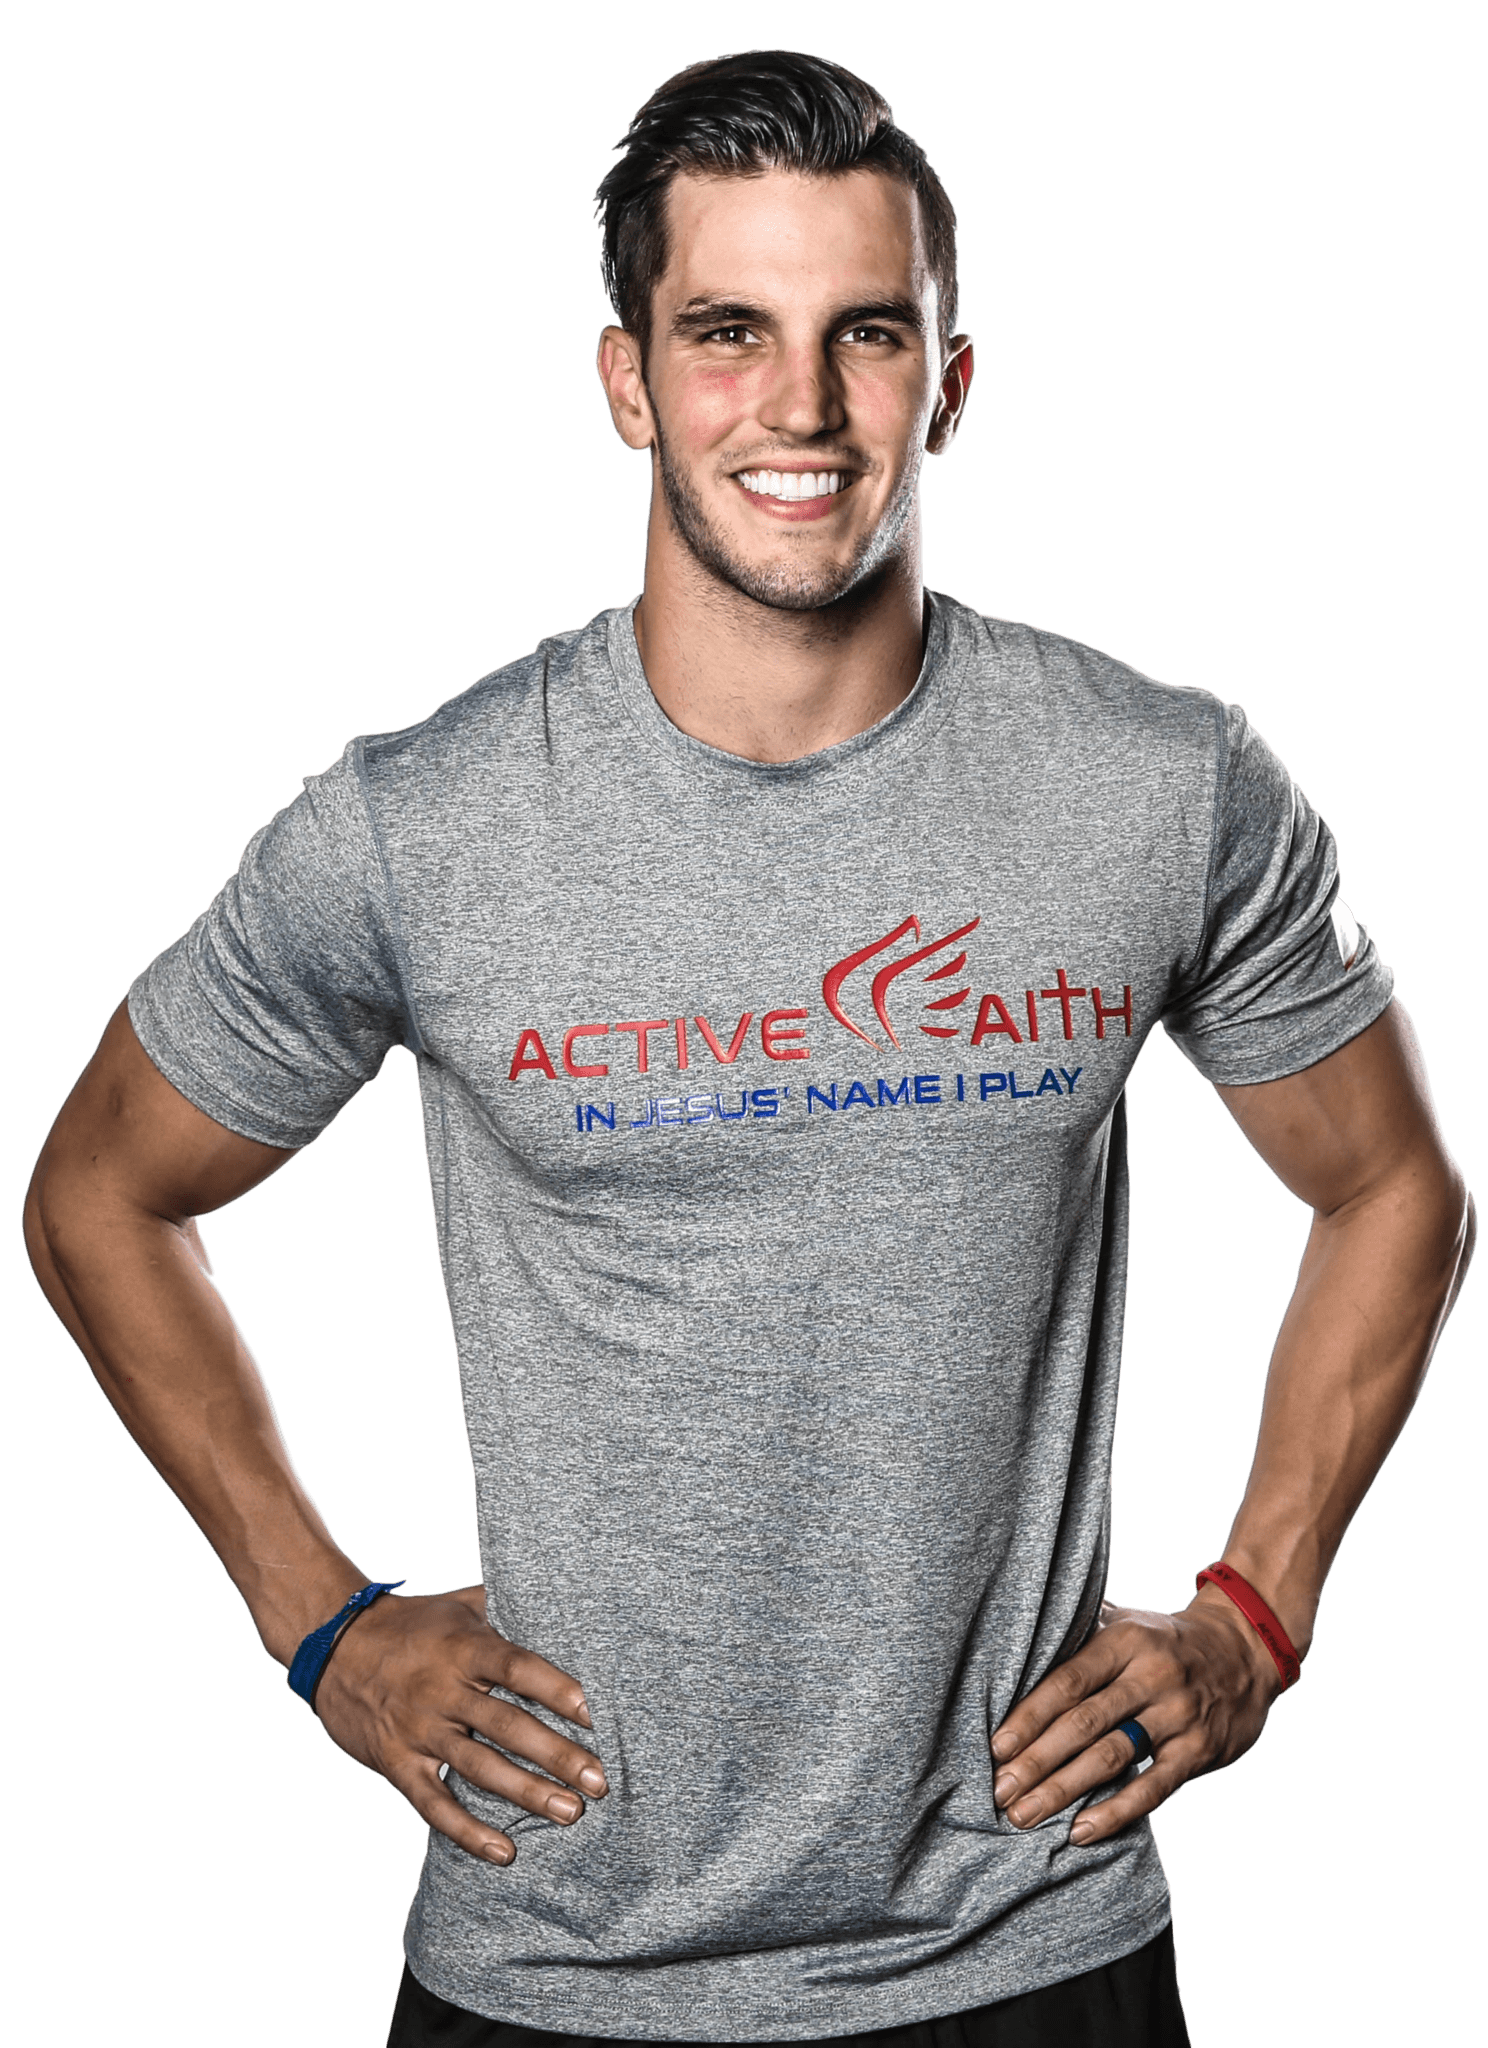 Men's Olympic Statement Shirt